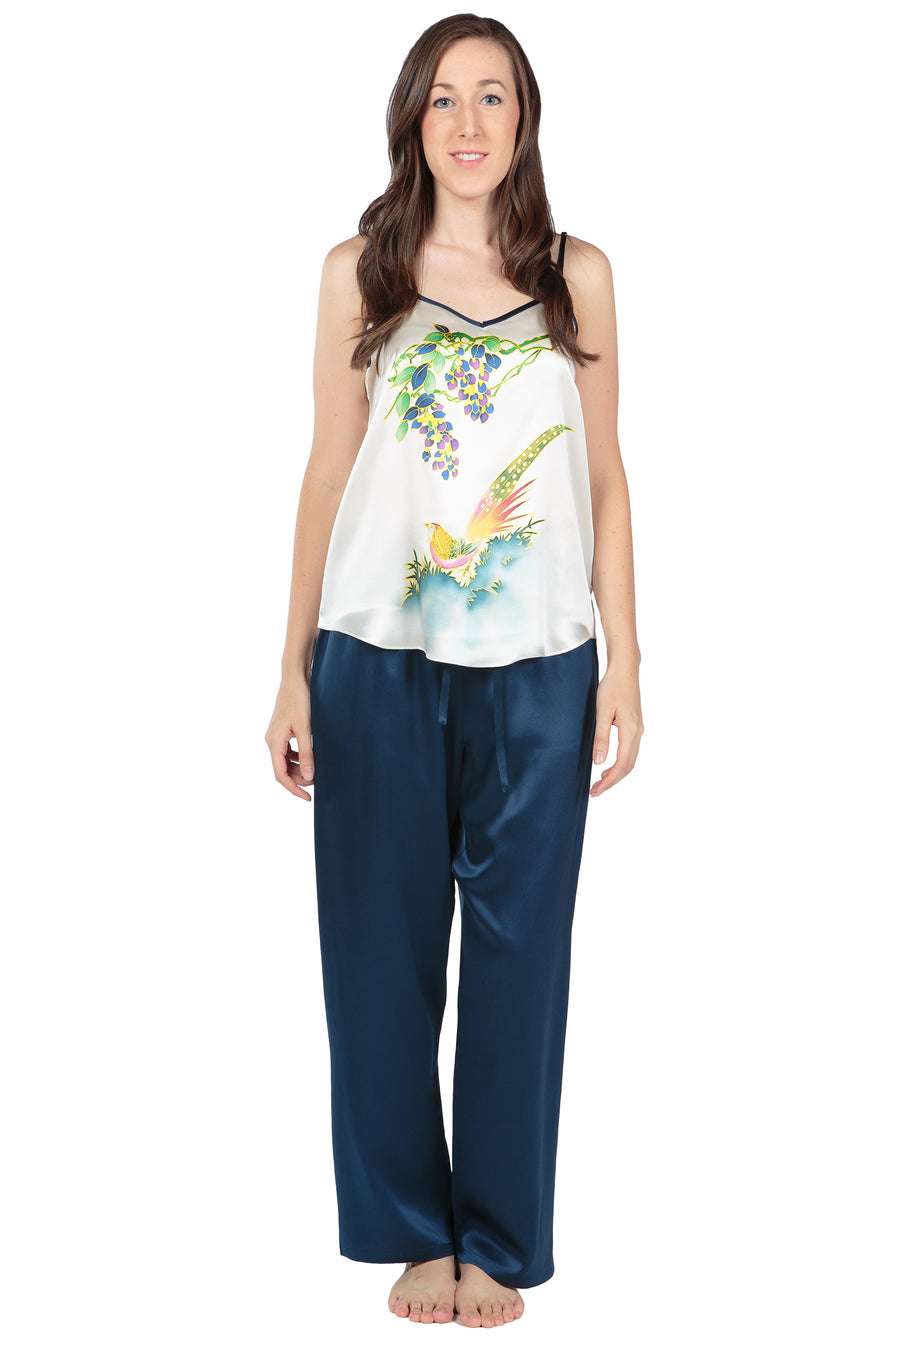 Phoenix in Paradise - Women's Hand Painted Silk PJ Set - TexereSilk